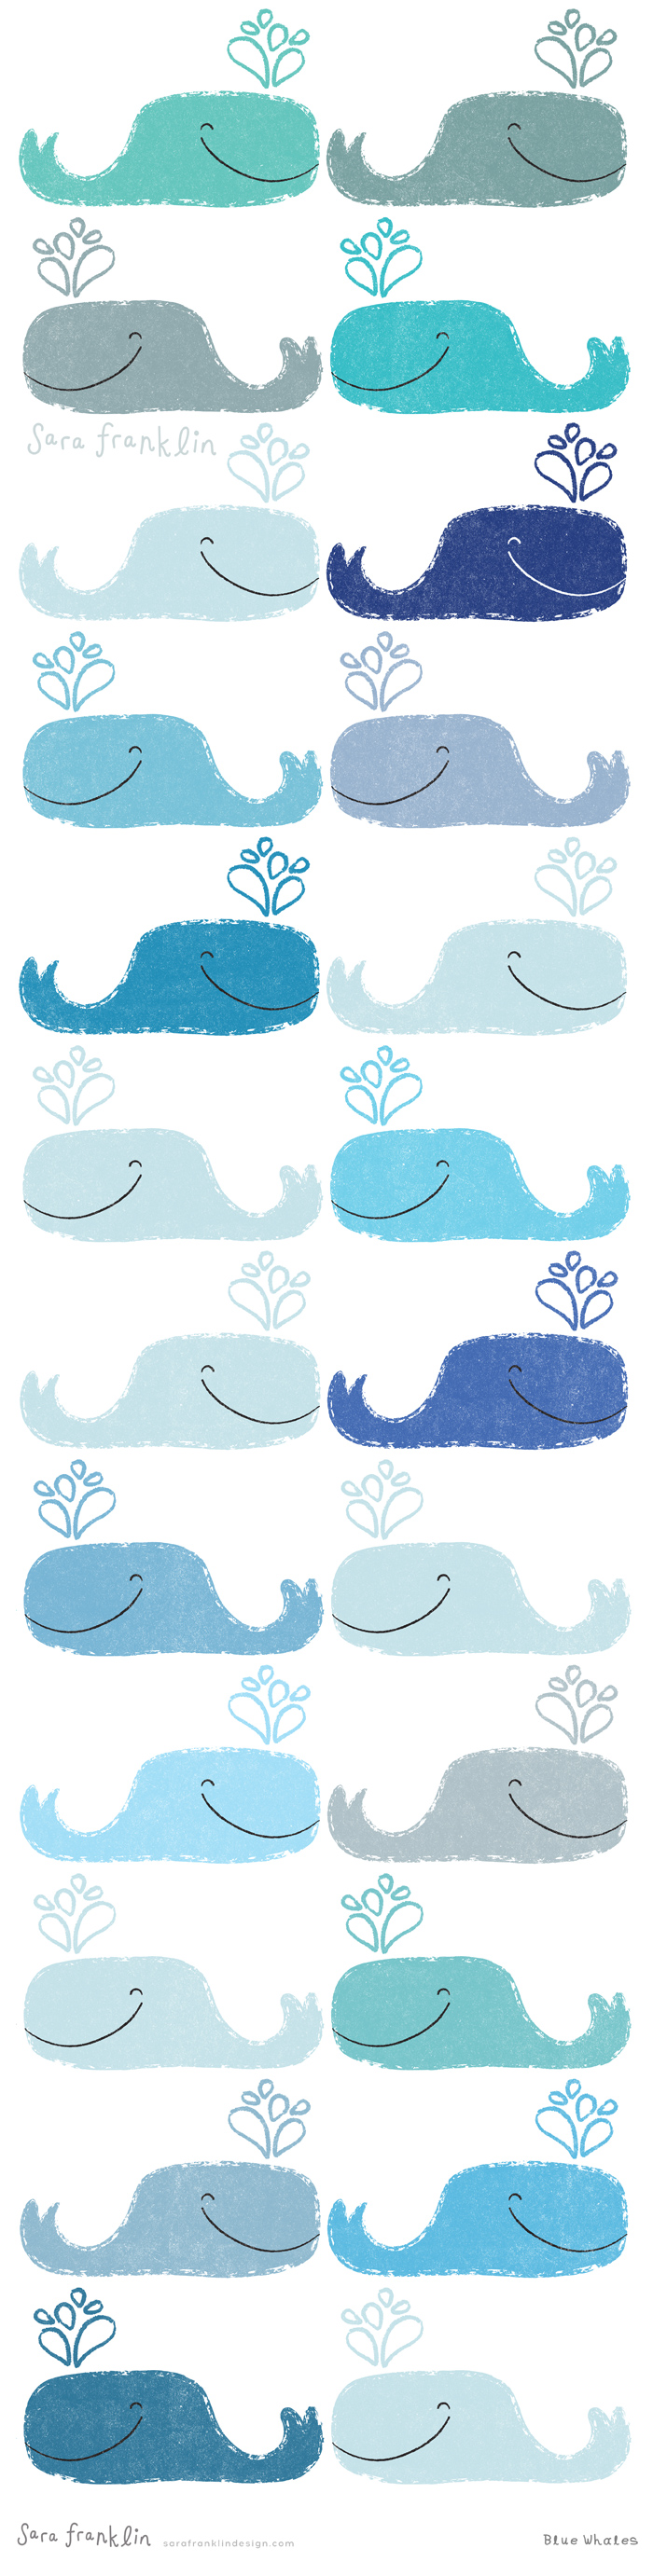 Blue Whales / Sara Franklin / Patterns / Boys / Kids Decor / Nautical / Seaside